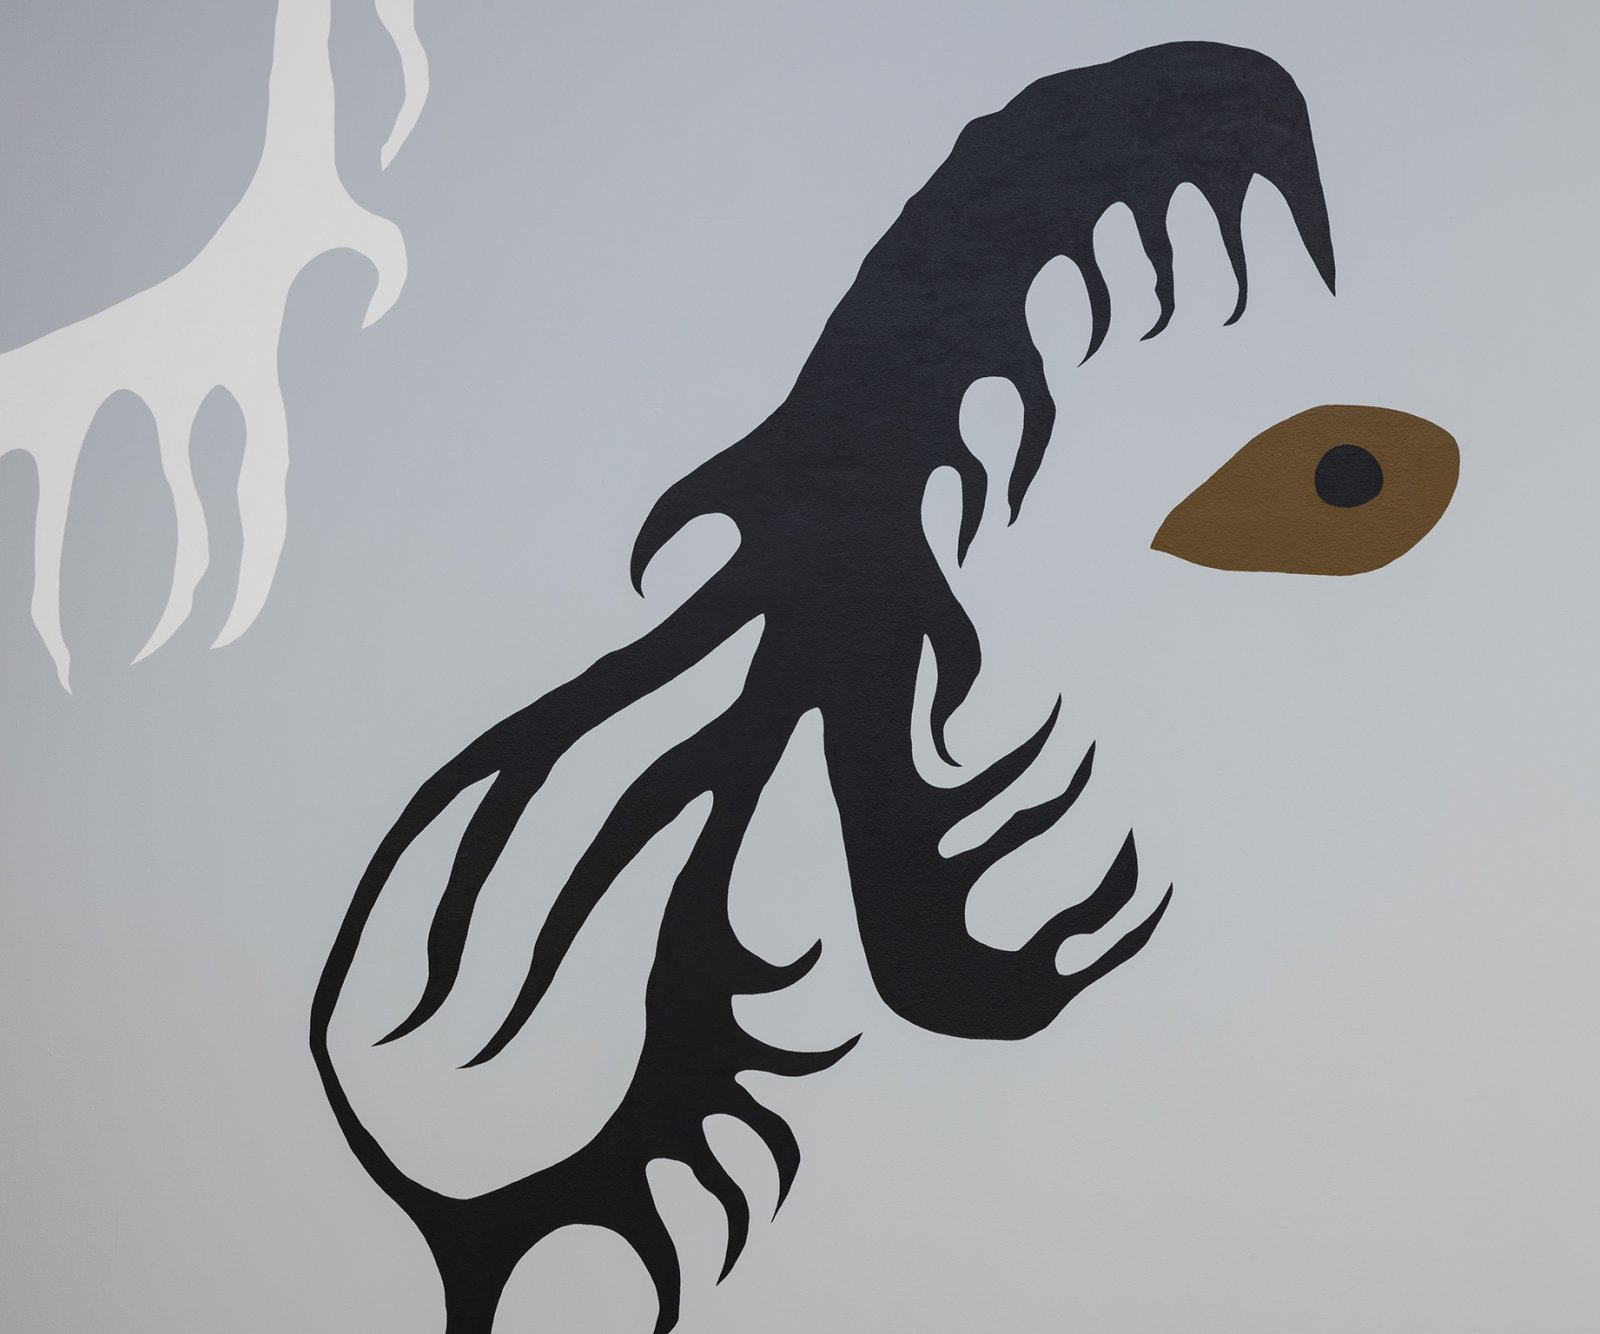 Duane Linklater,Earth Mother Hair, Indian Hair, and Earth Mother Eyes, Indian Eyes, Animal Eyes(detail), 2017, paint on wall, dimensions variable